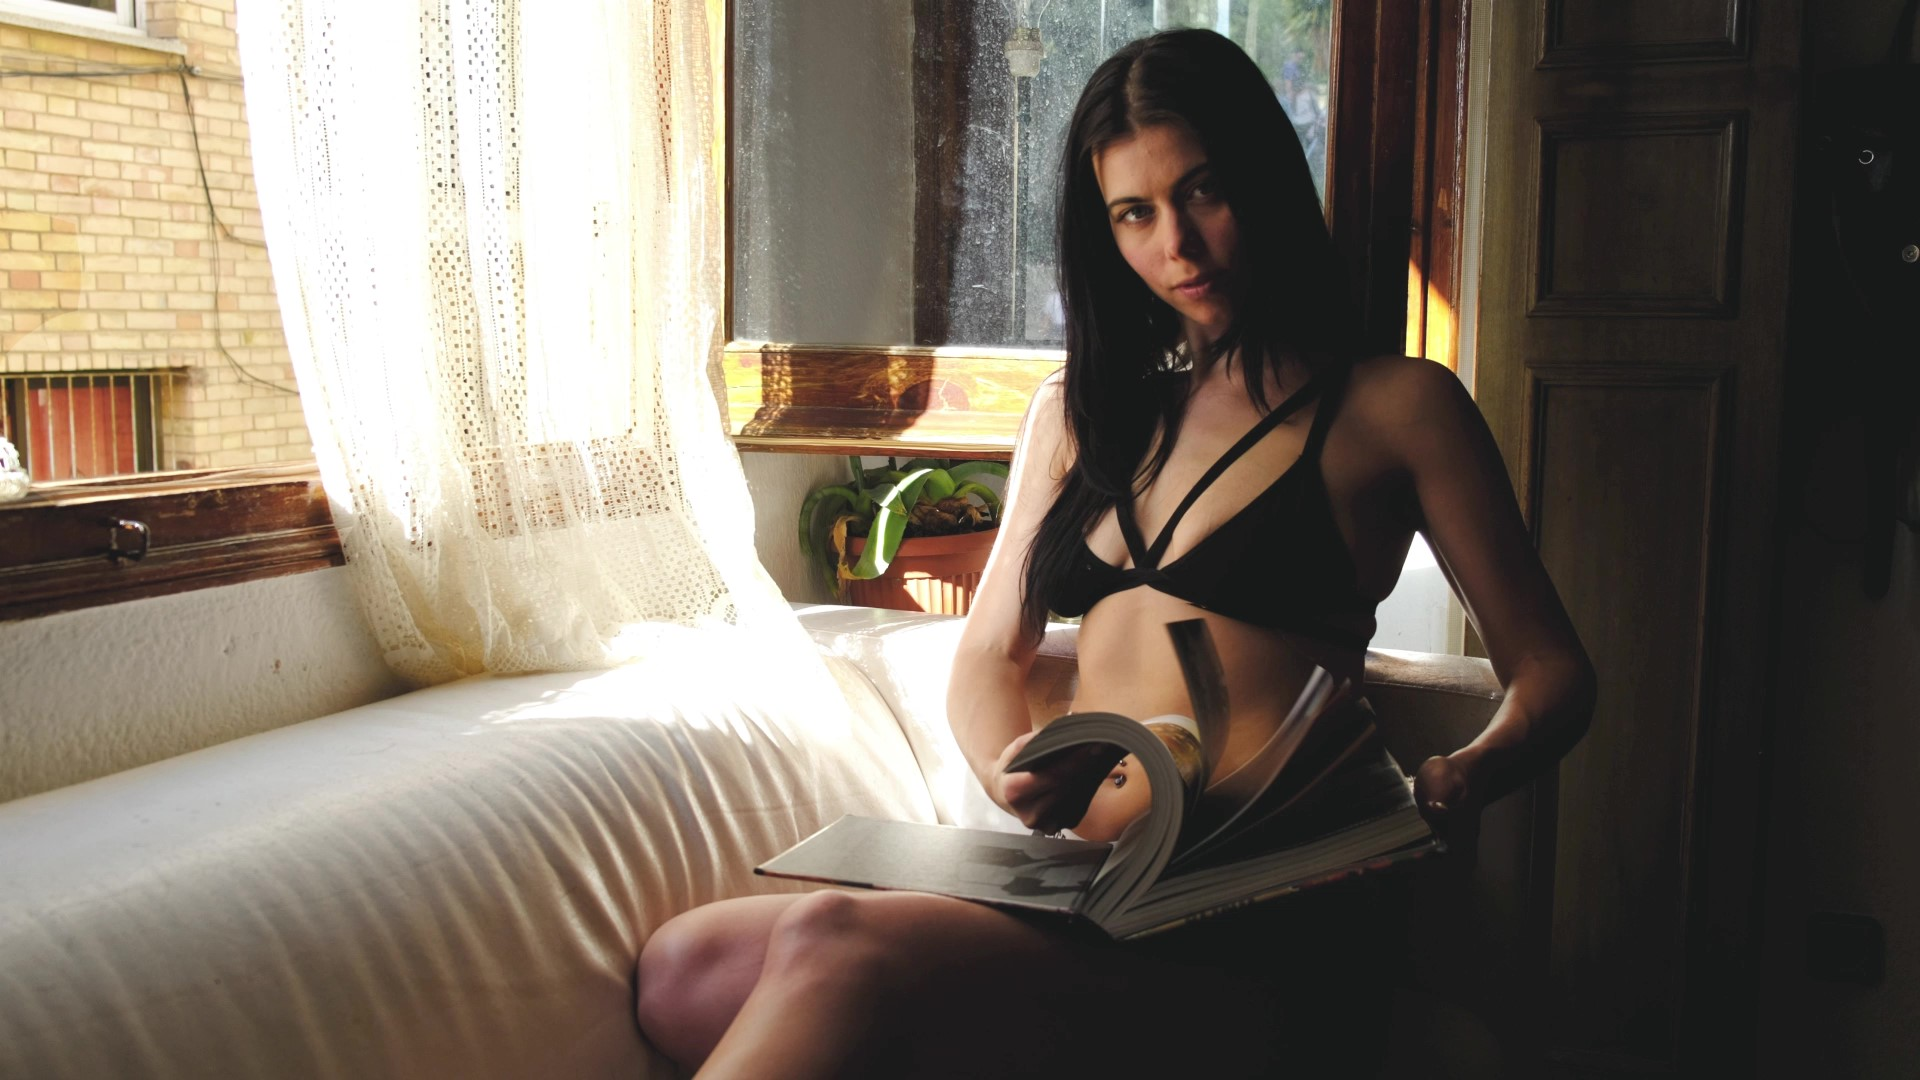 Sexy women in her underwear reading a book by the window Lemonbahaya cinemagraph by Kassisien